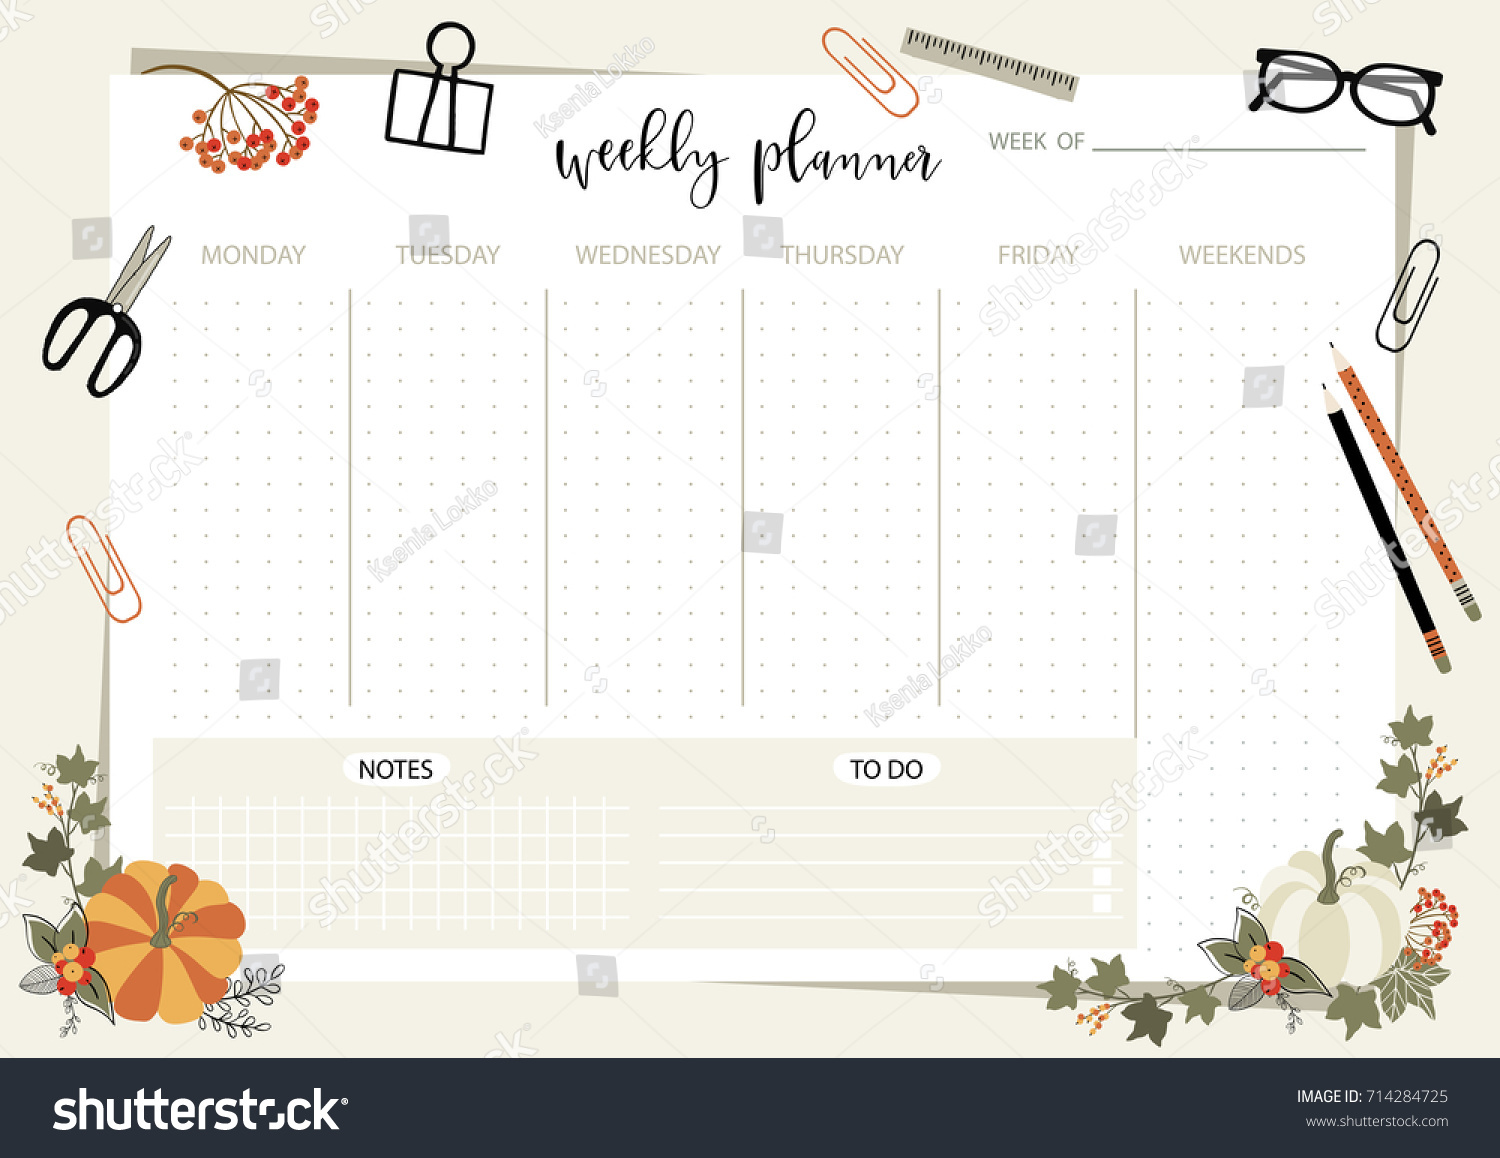 Weekly Planner Template Organizer And Schedule With Place For Notes Vector Illustration Cute